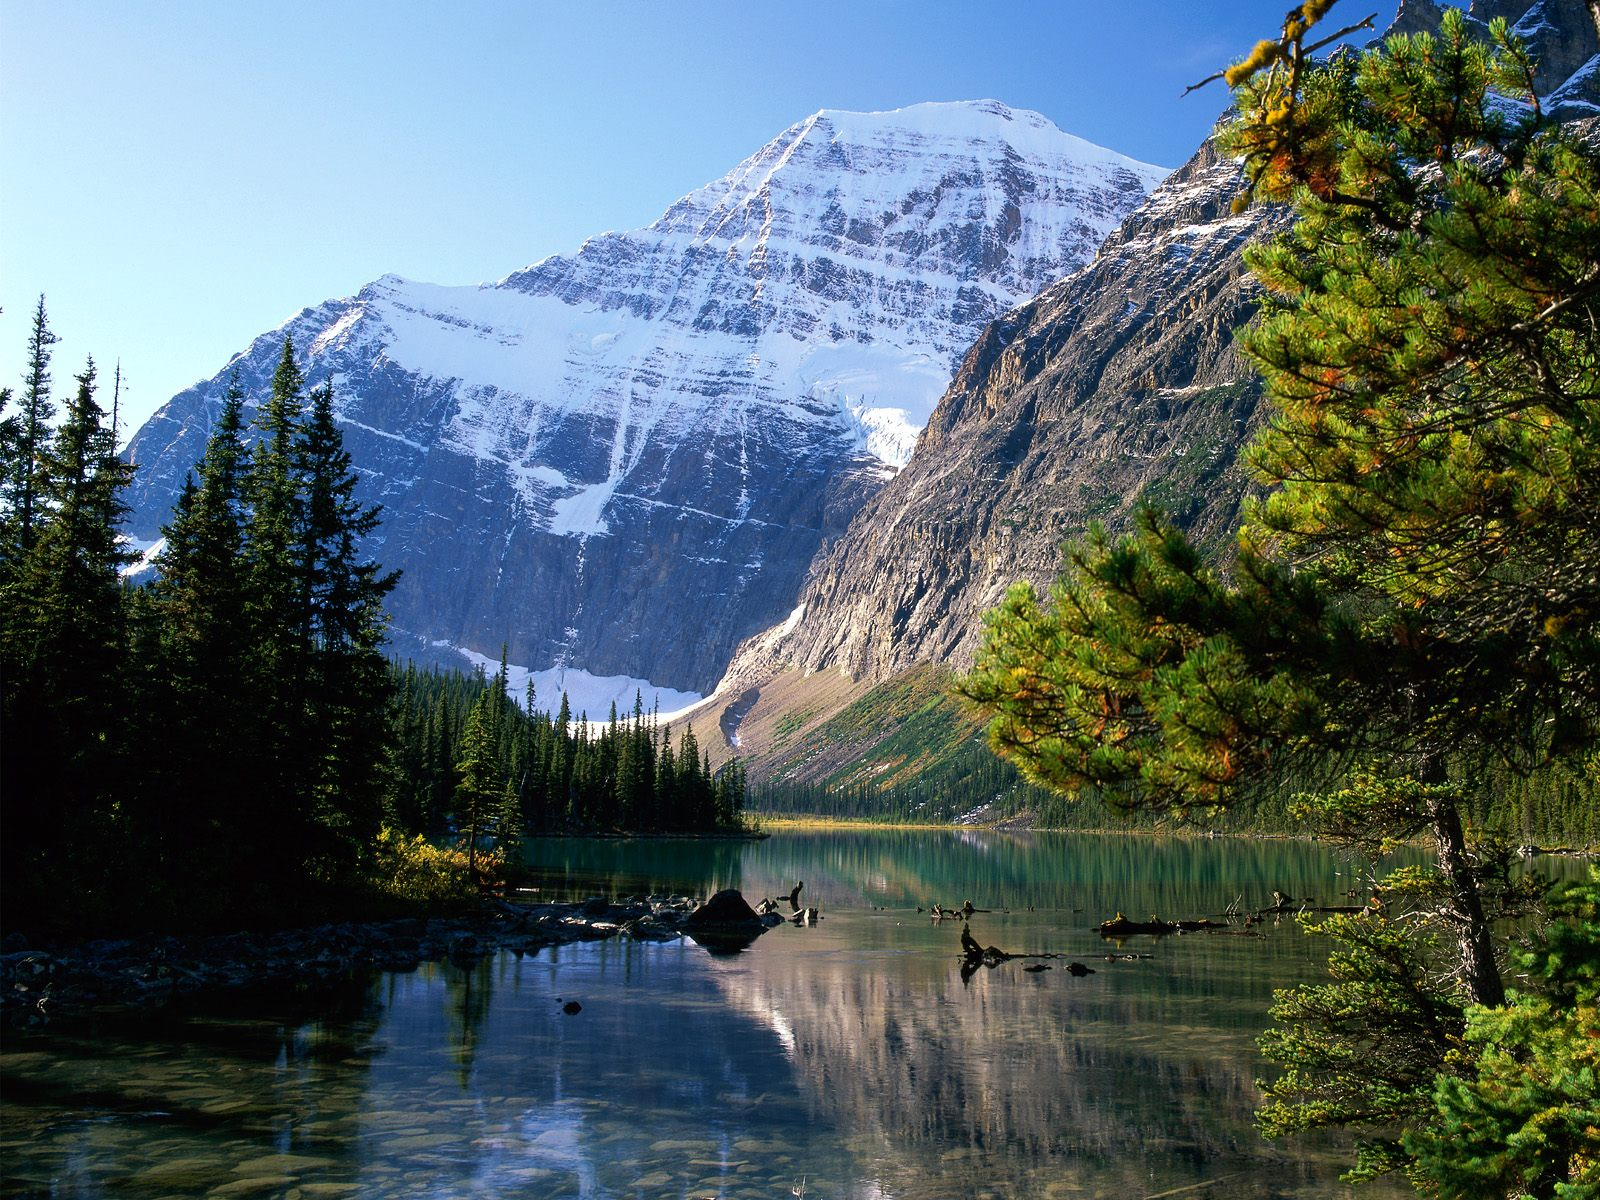 https://i0.wp.com/images.fanpop.com/images/image_uploads/Jasper-National-Park--Alberta-canada-55821_1600_1200.jpg